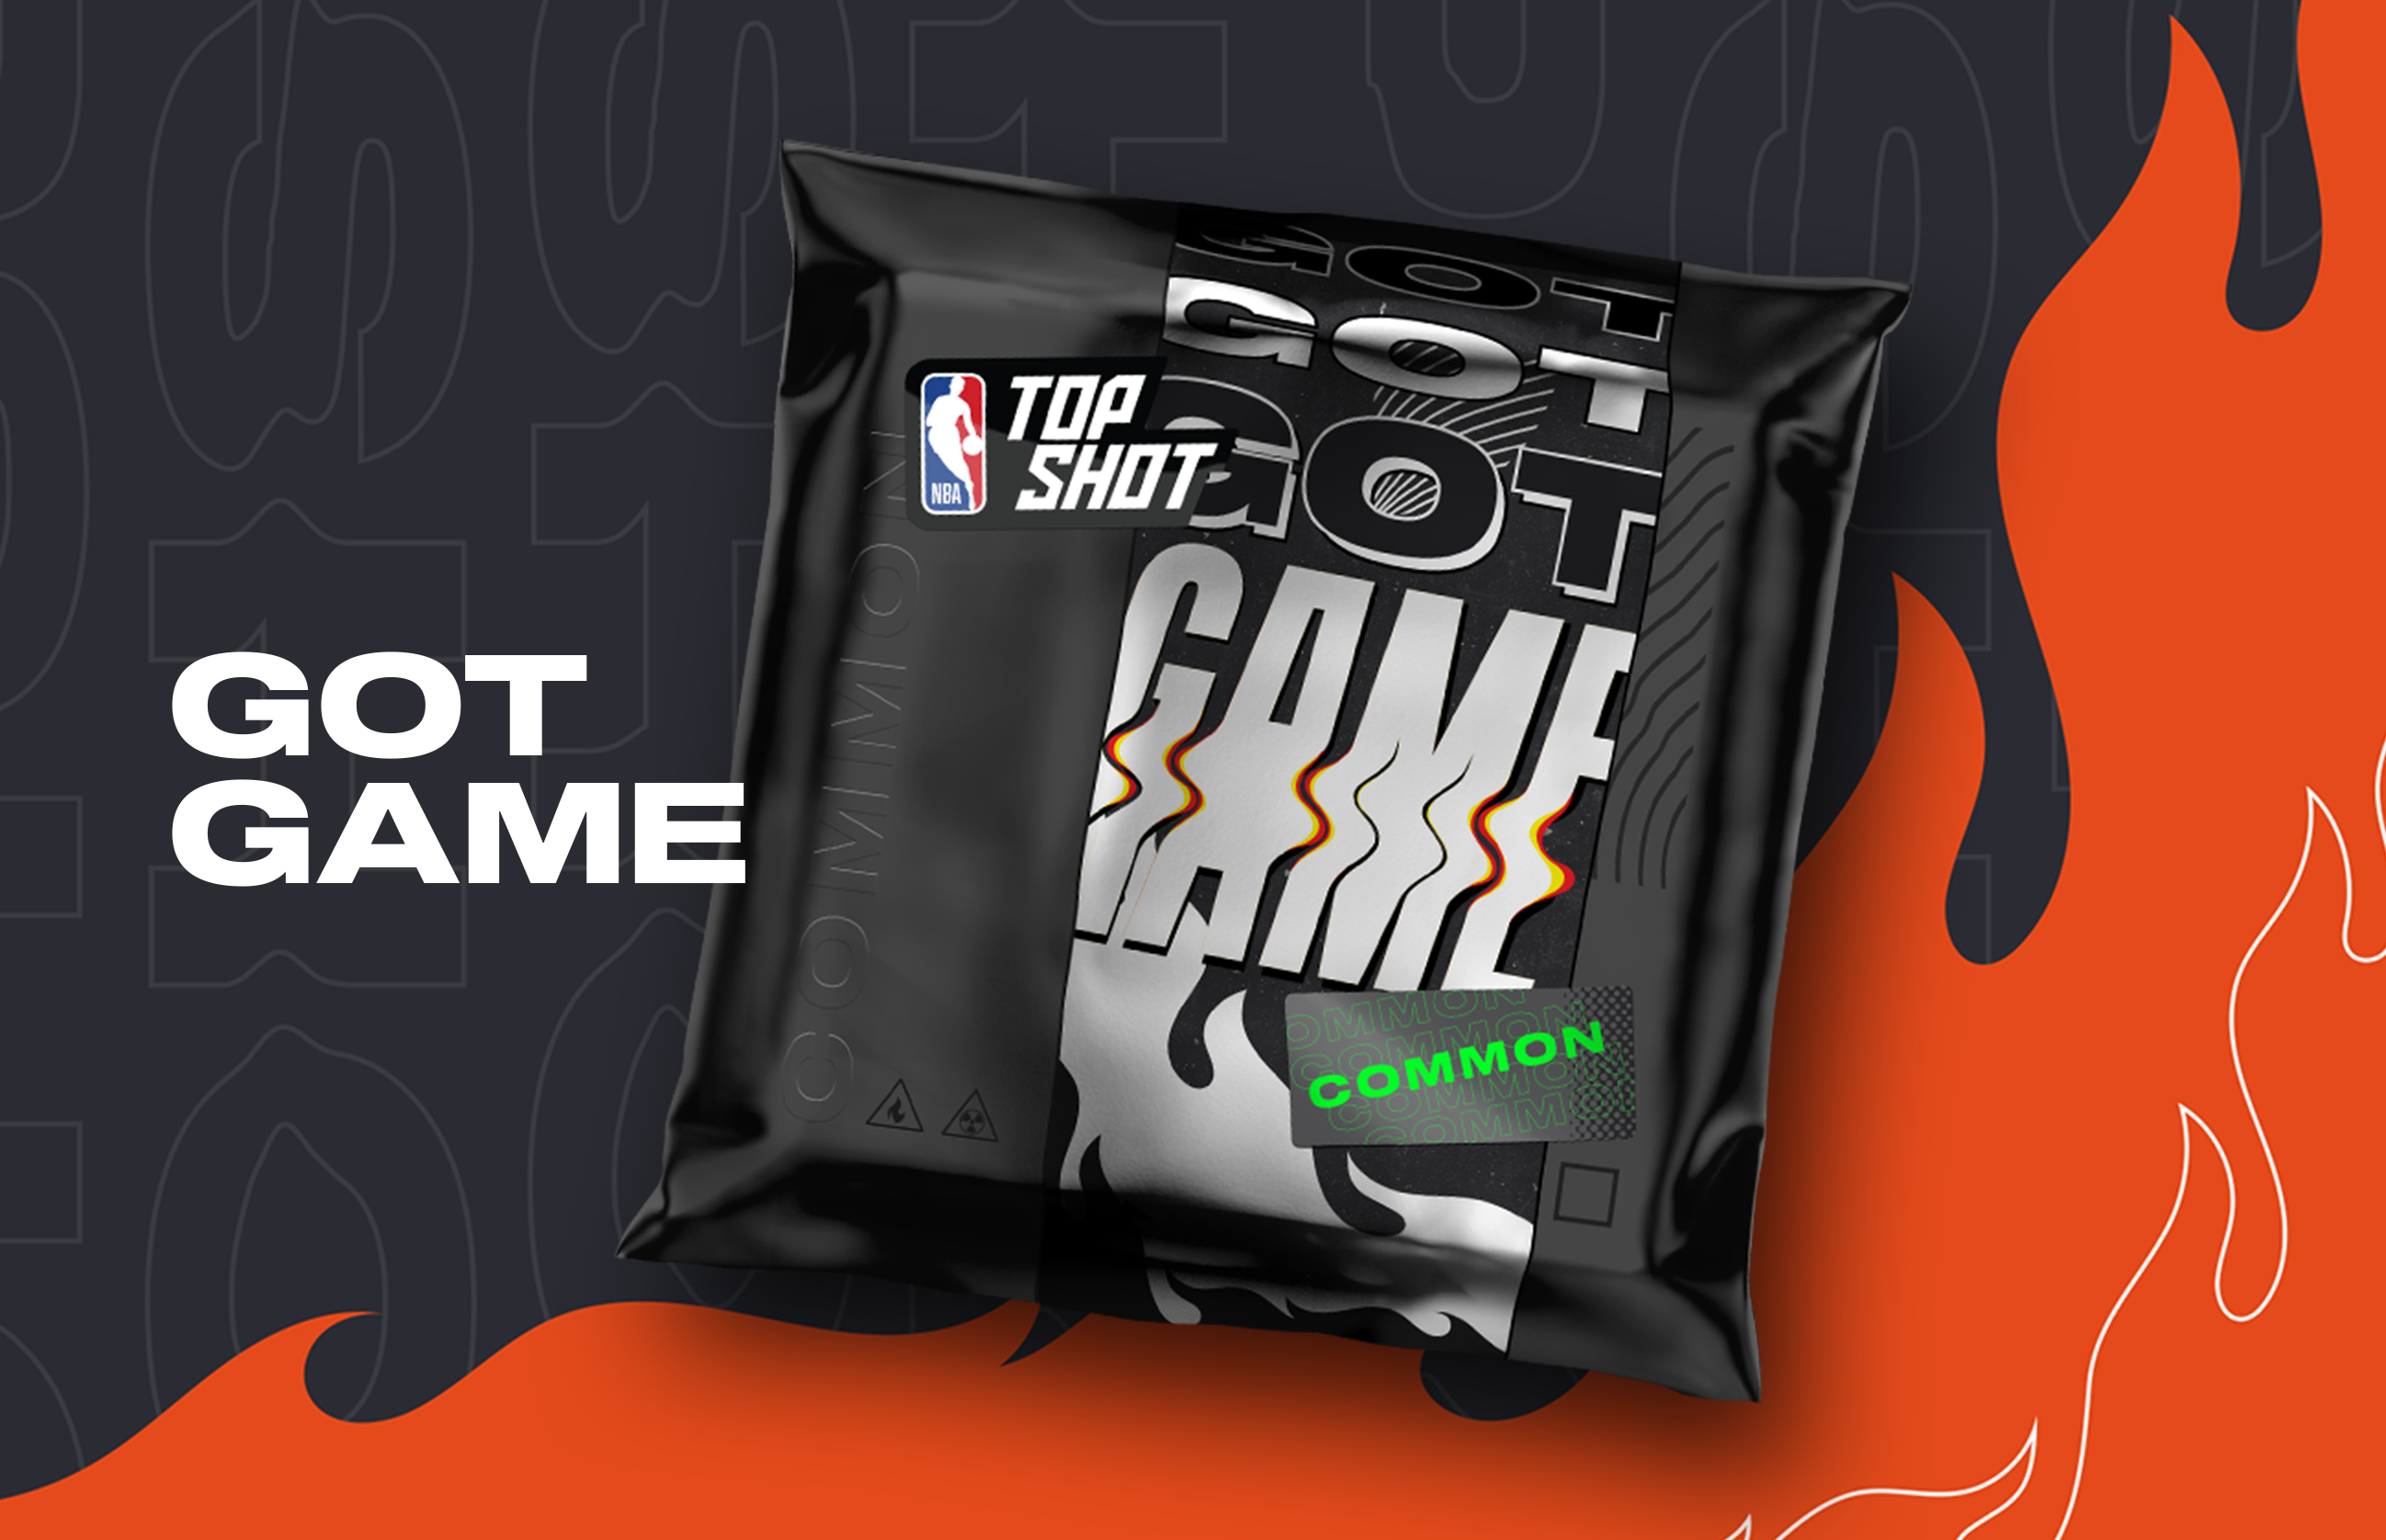 With a rising superstar, a reigning NBA champion, and some up-and-coming two-way wings, these packs have something for every fan to enjoy.